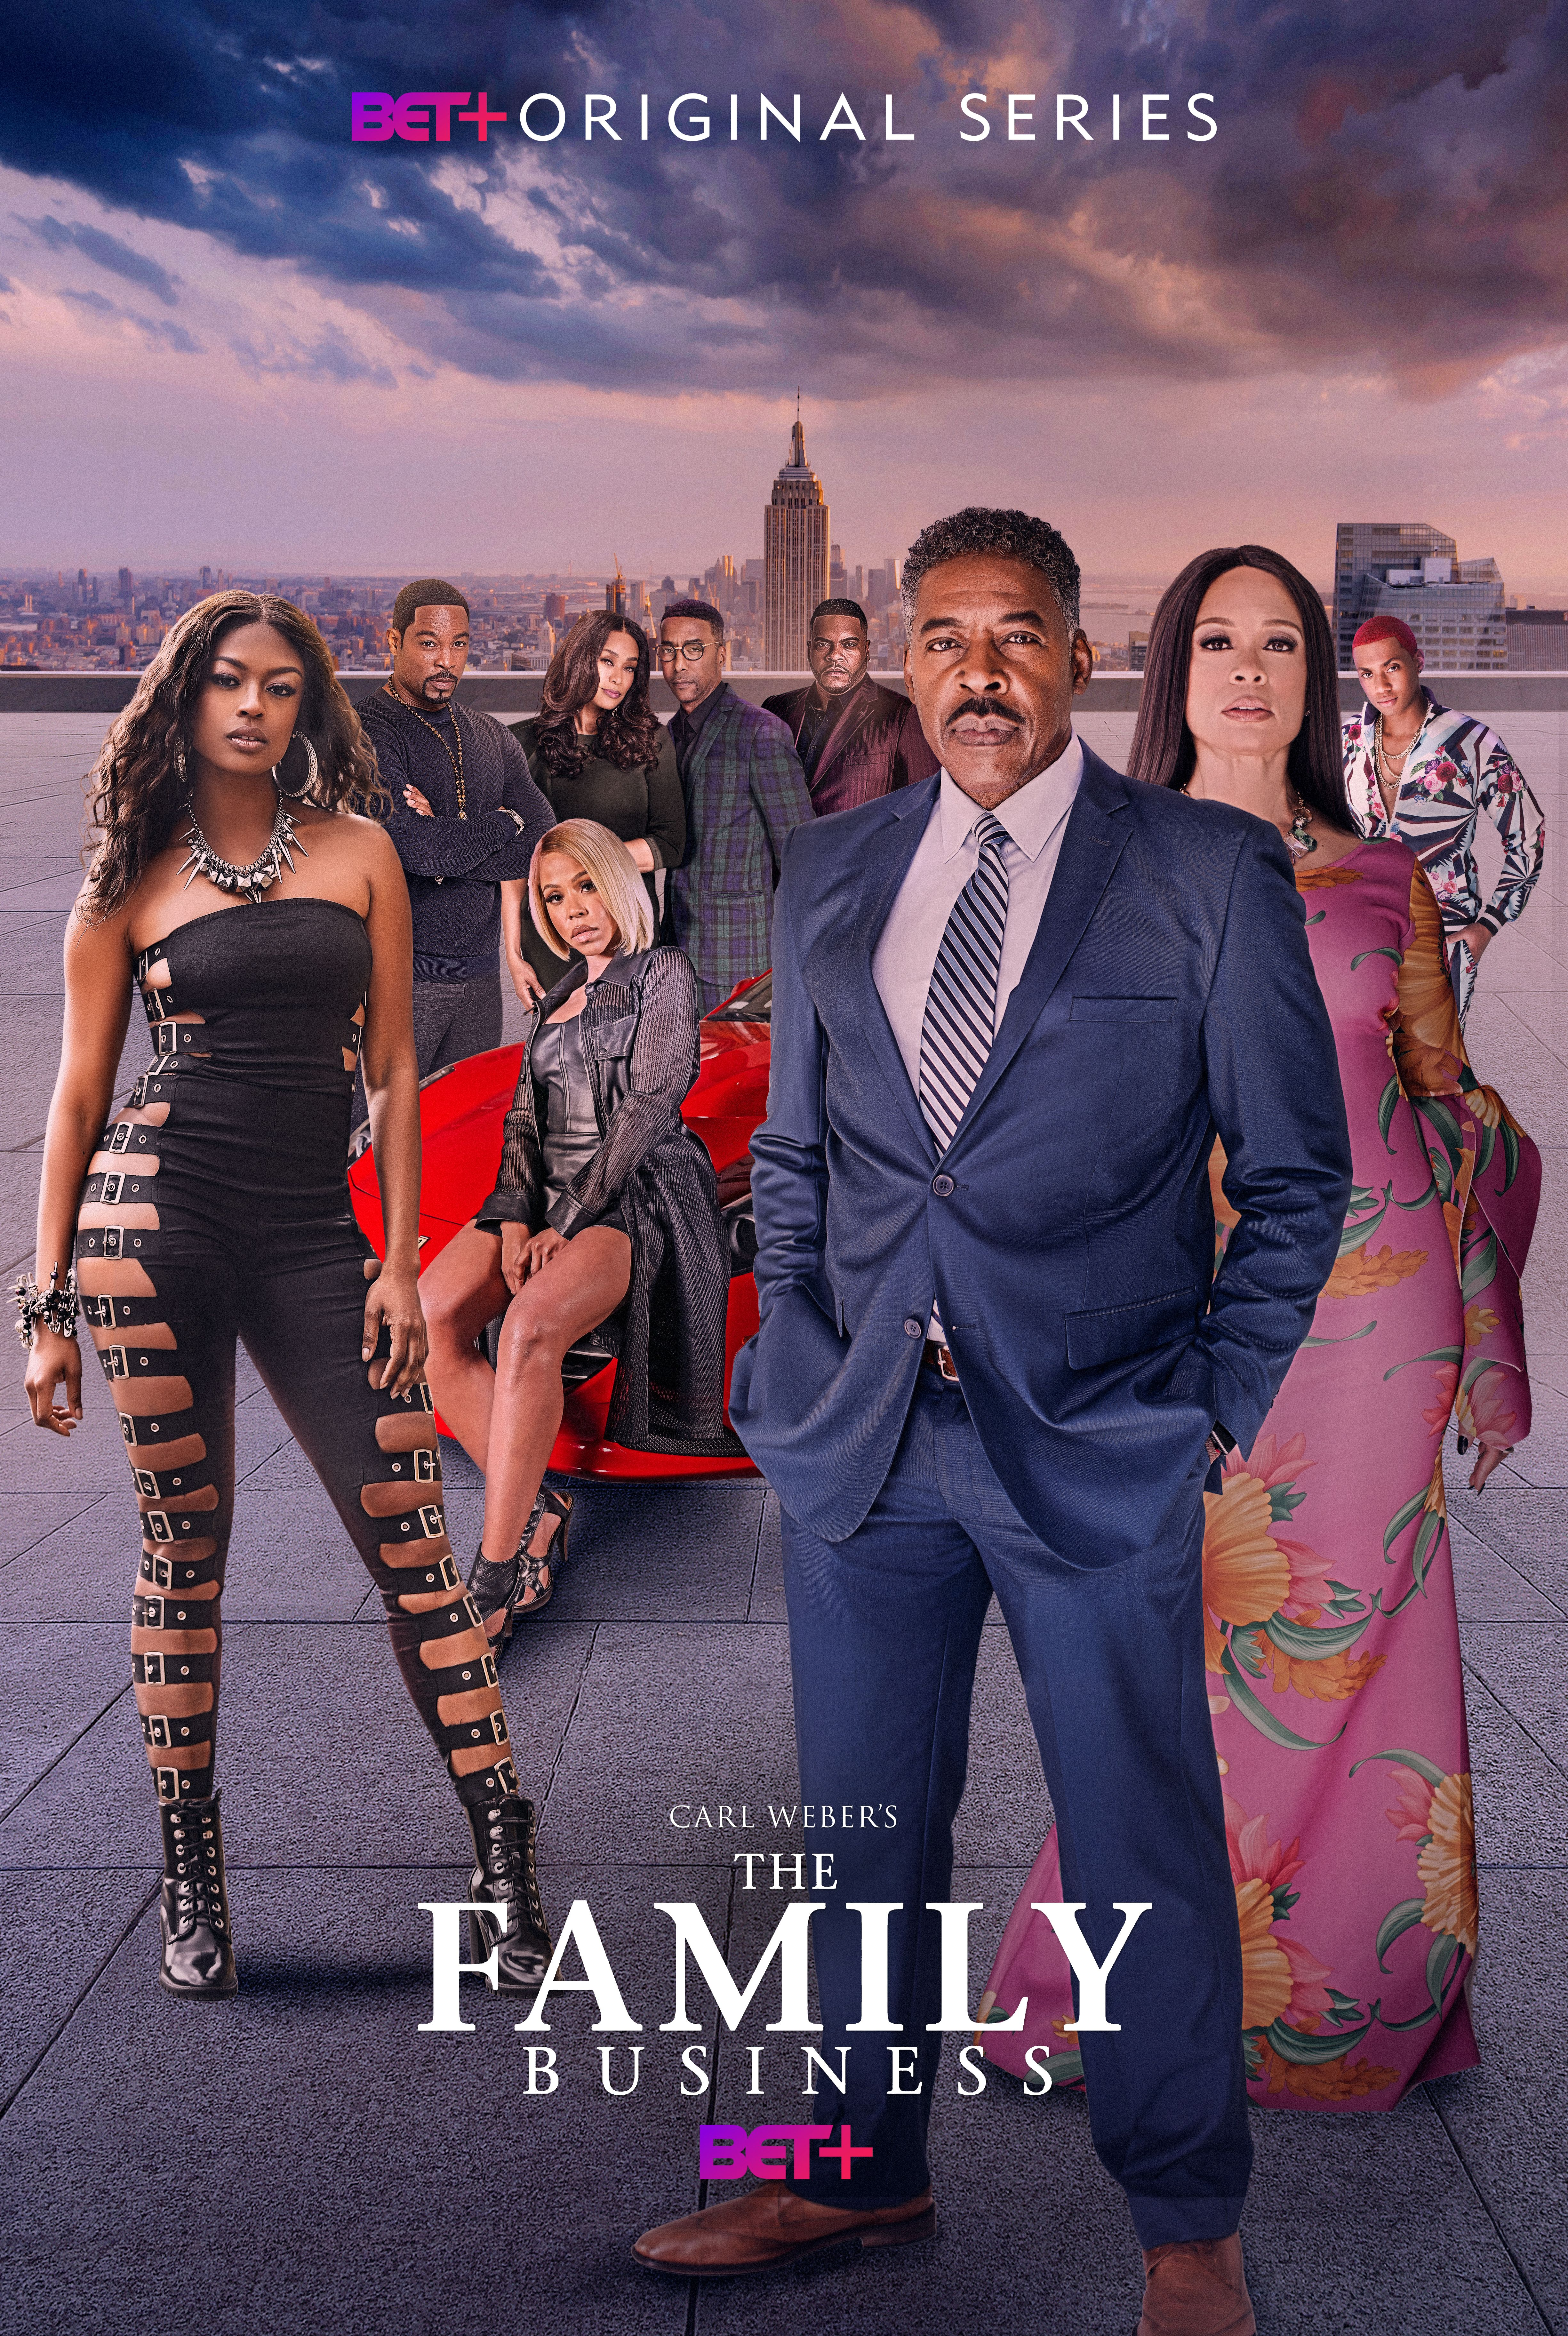 carl weber family business series on bet